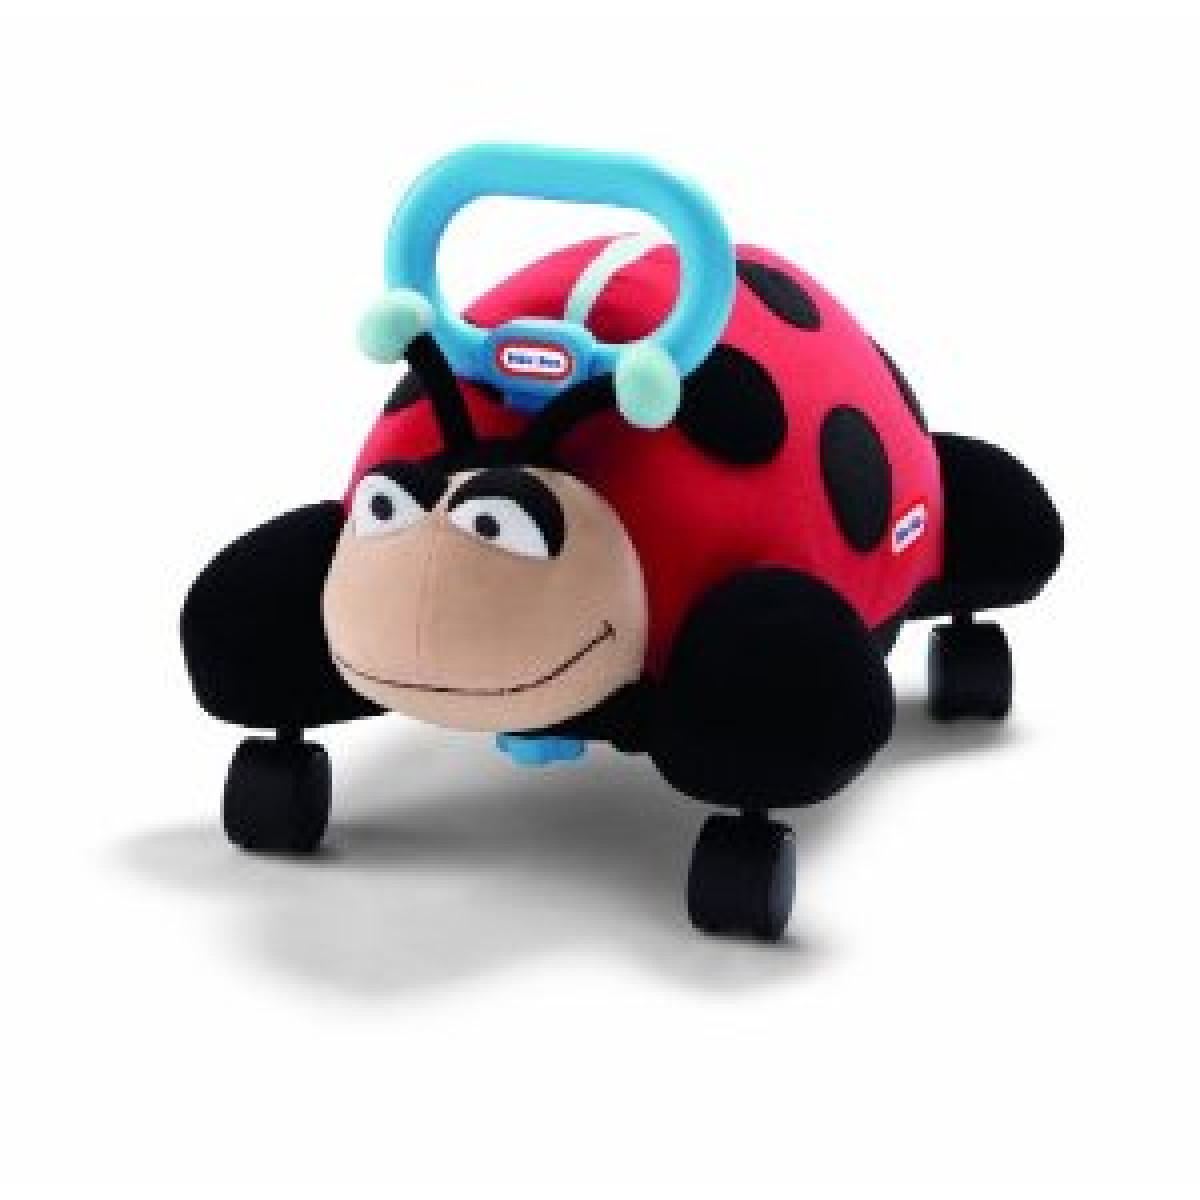 Little Tikes Pillow Racers Ladybug